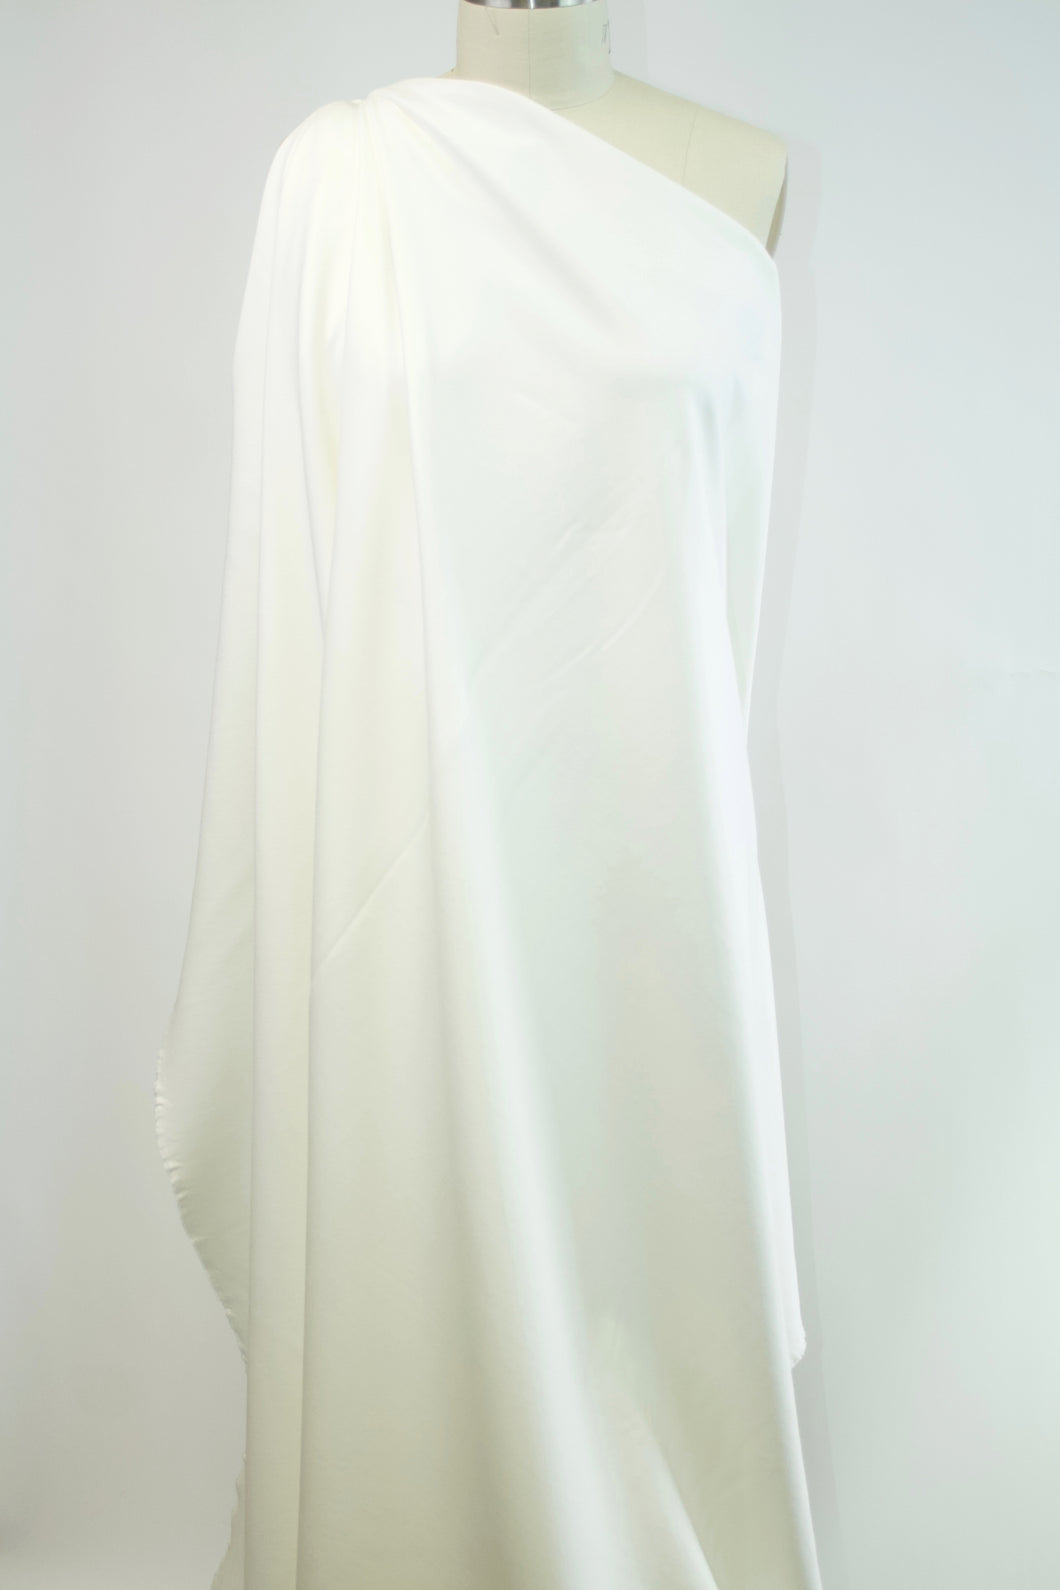 Designer Rayon Double Knit - Barely Off-White